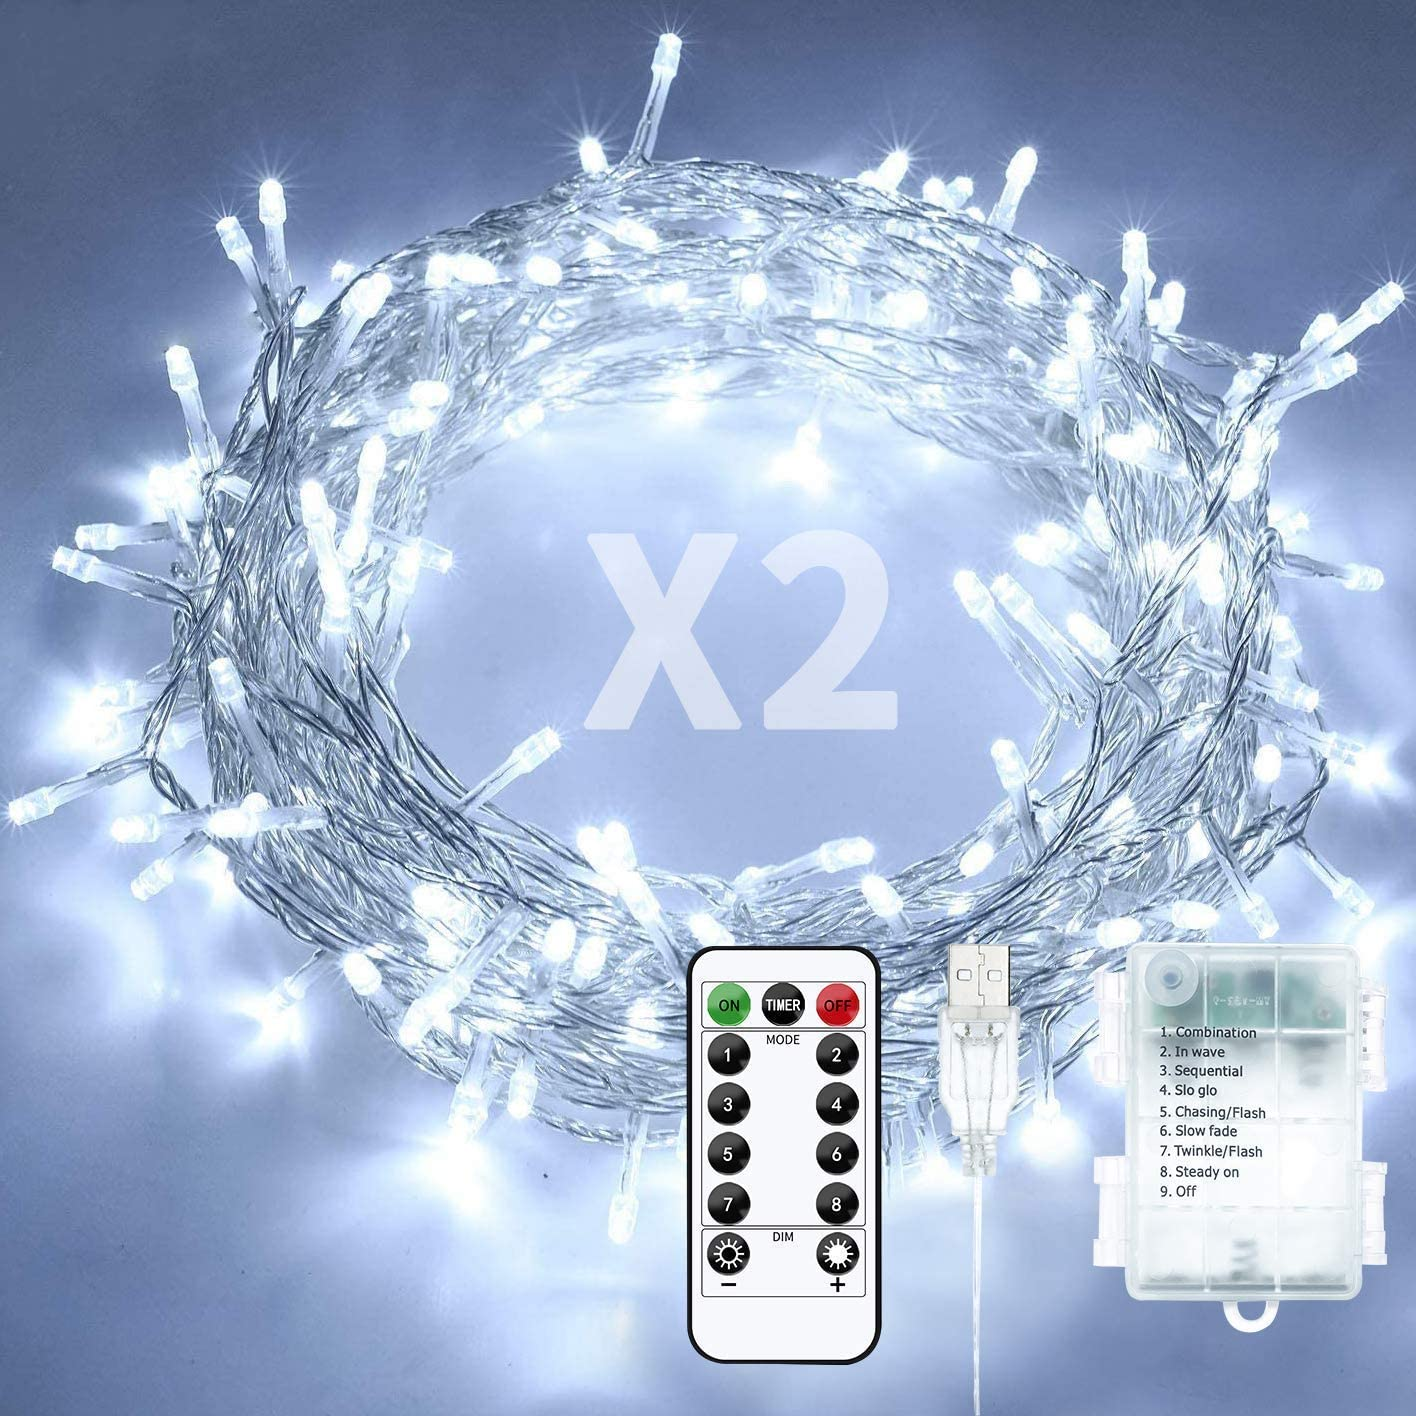 Baimo 2 Pack 33ft 100 LED Battery Operated String Lights with USB Cable, 8 Modes Waterproof Remote Timer Fairy Lights Indoor Outdoor for Christmas, Garden, Party (Cool White)